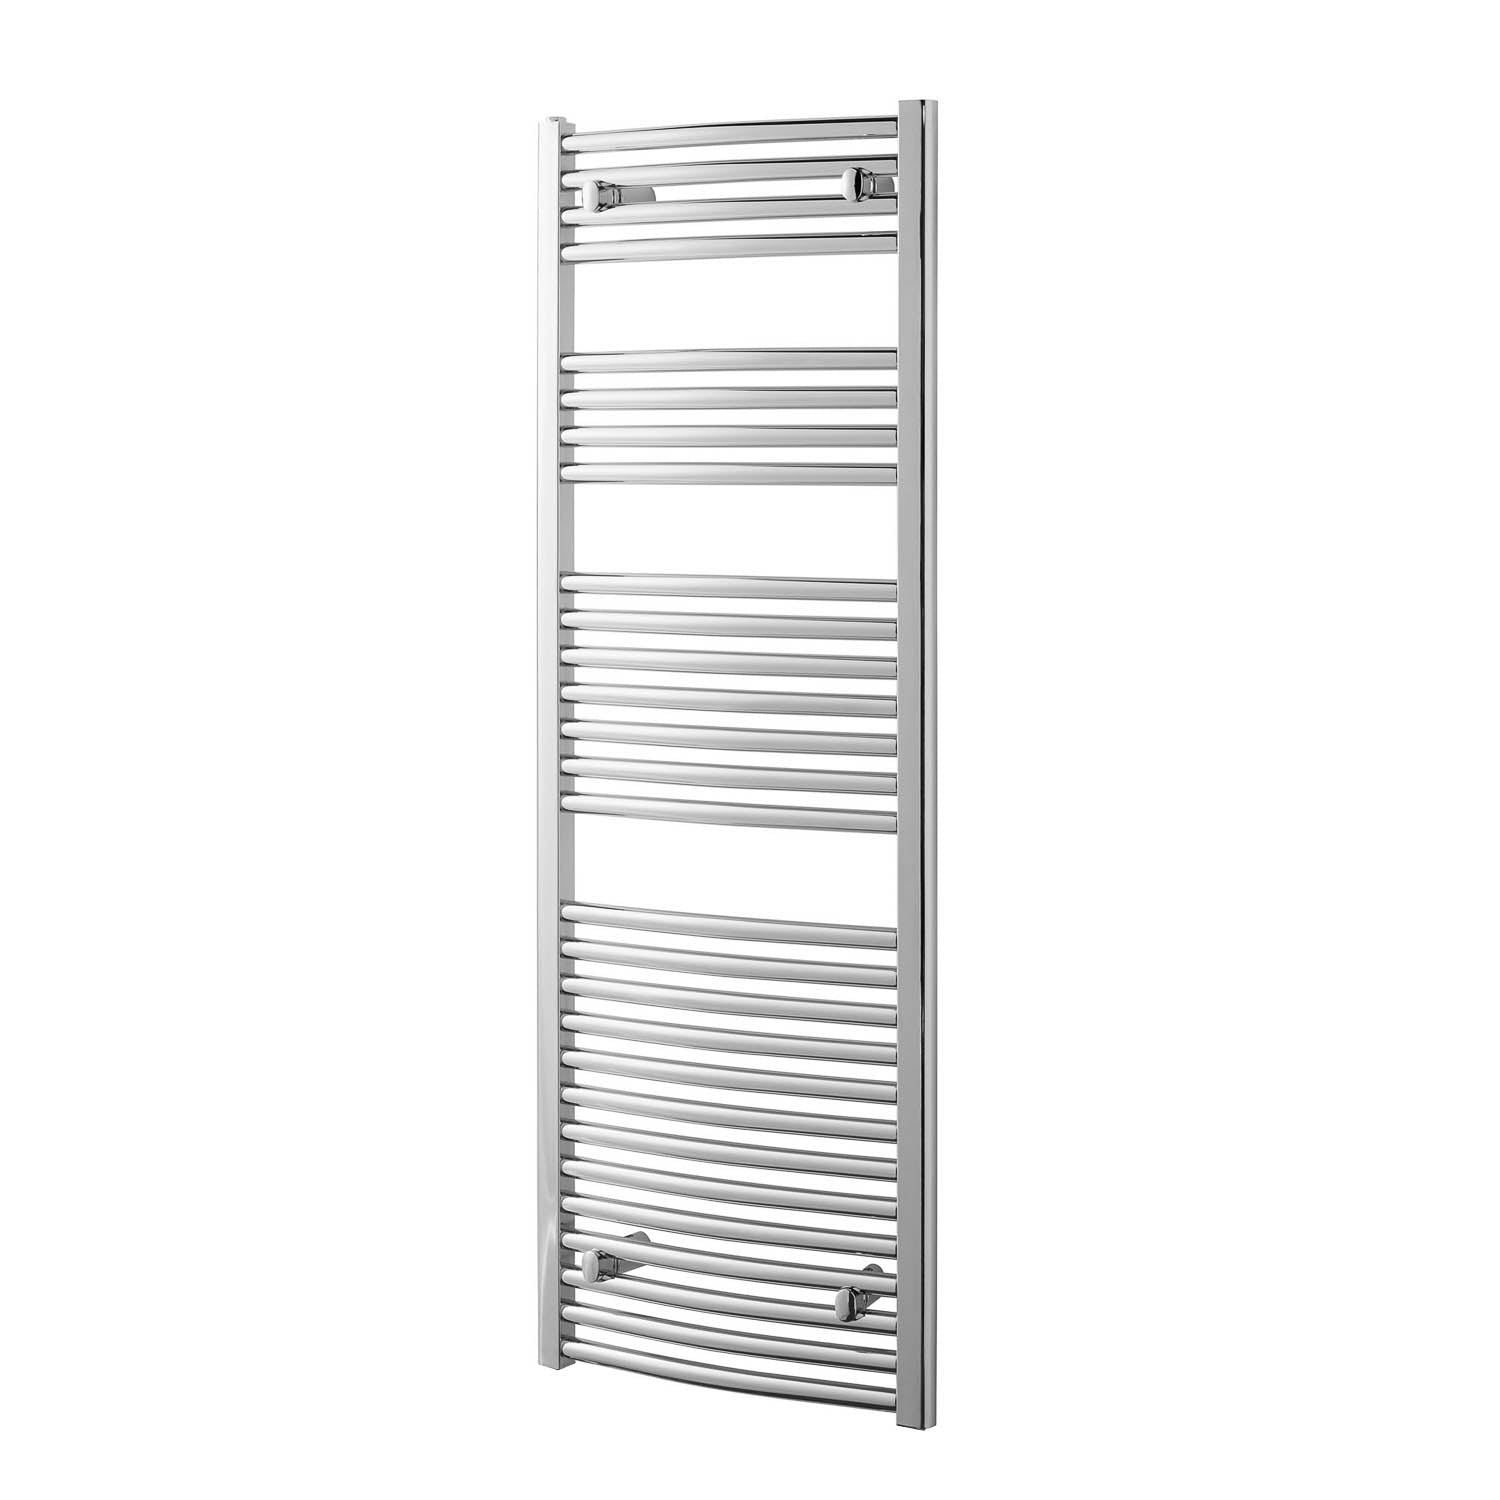 1600x500mm Modale Anti-Scald Towel Rail with a chrome finish on a white background